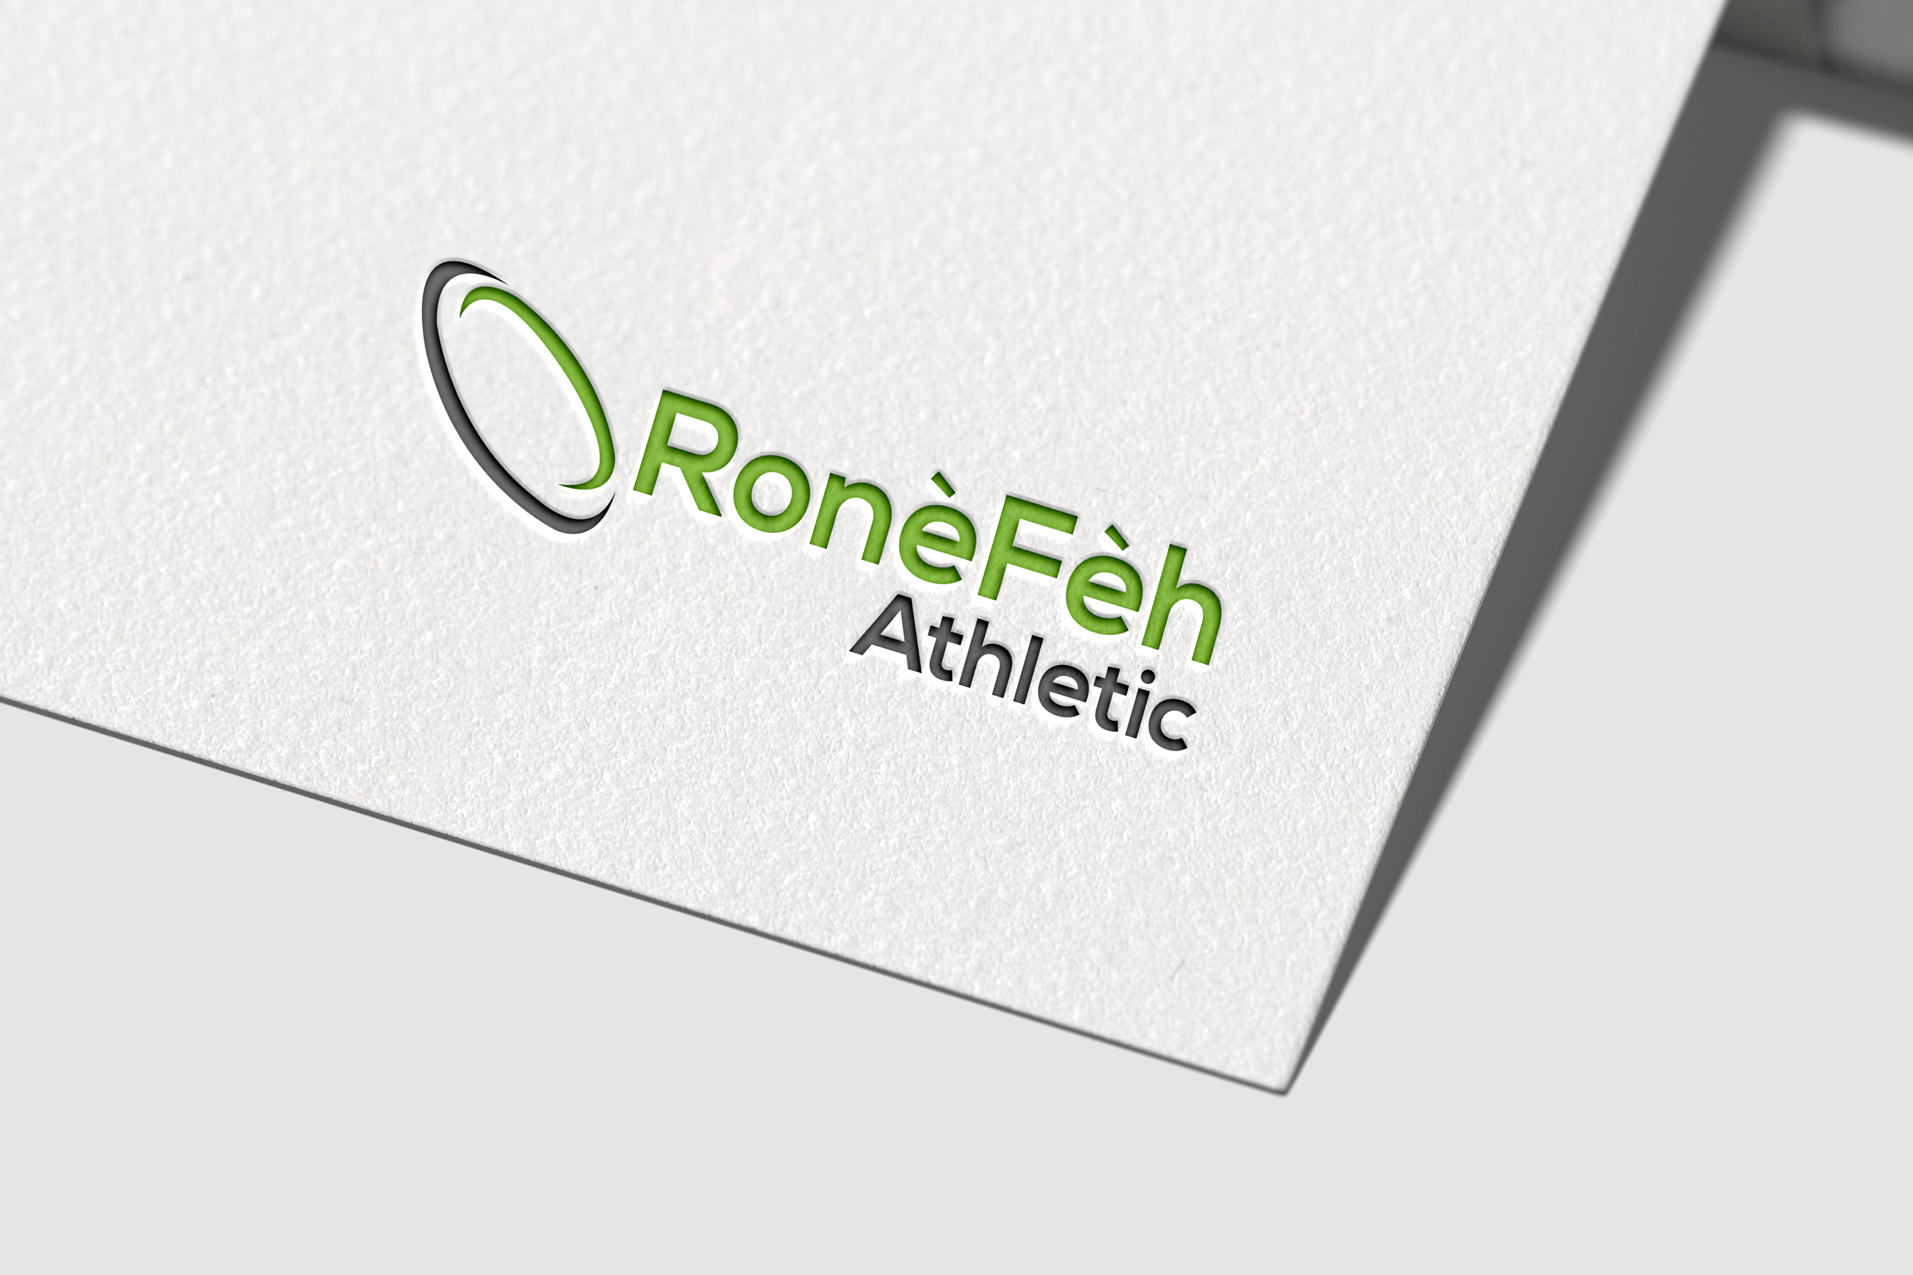 Ronefeh-Athletic-logo-on-paper